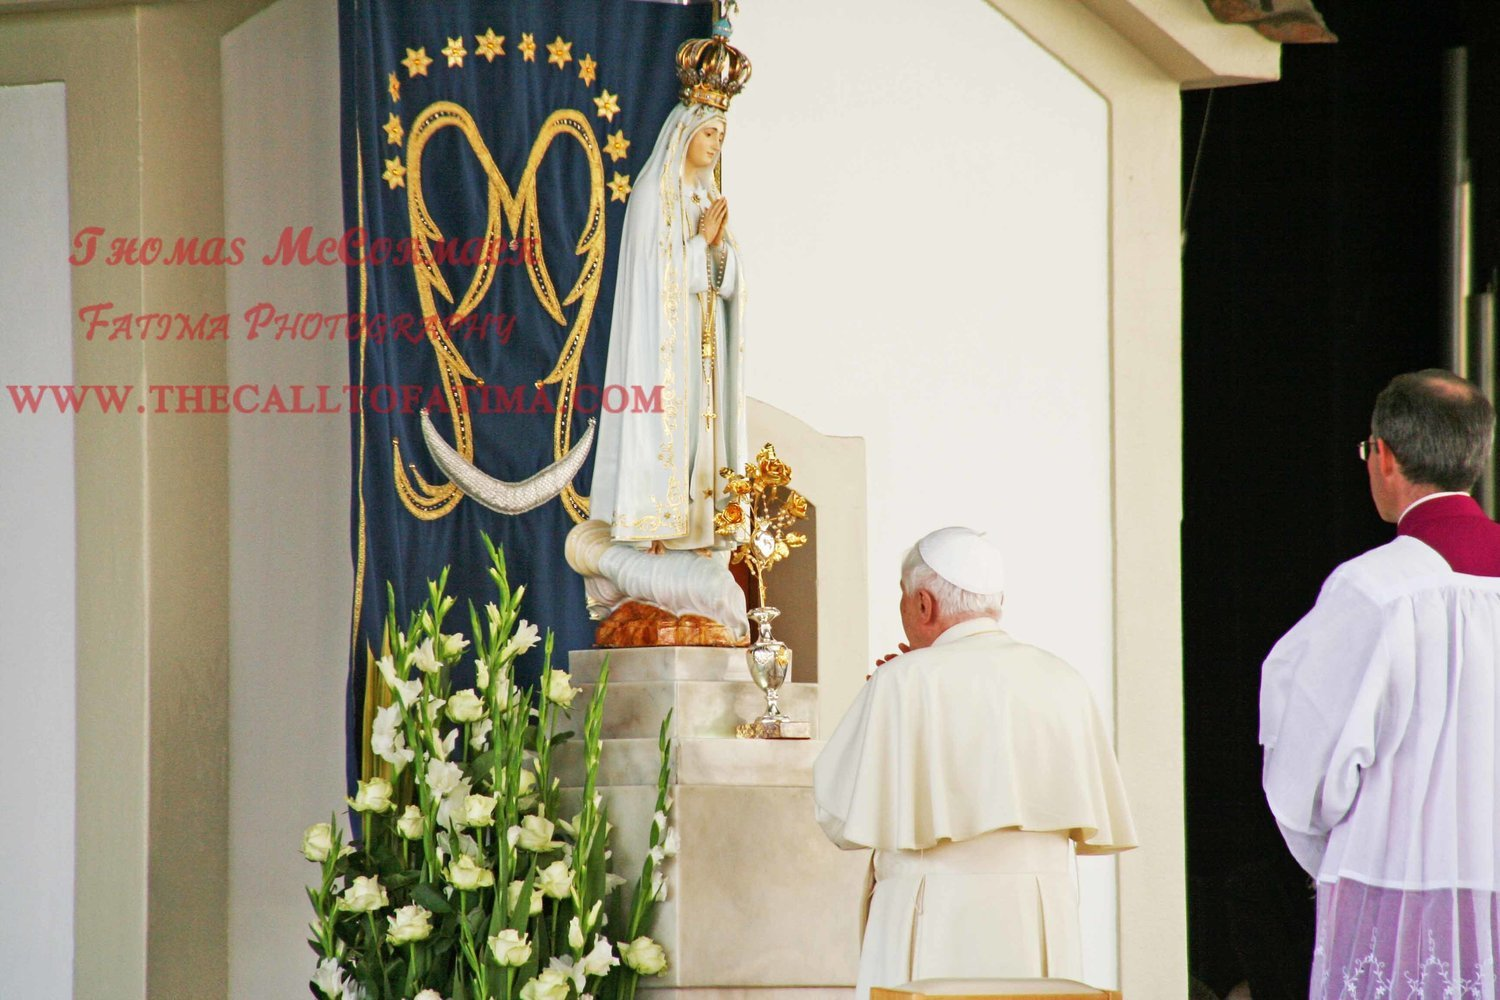 Pope Benedict XVI prays at the Chapel of Our Lady in Fatima Photograph A4 print